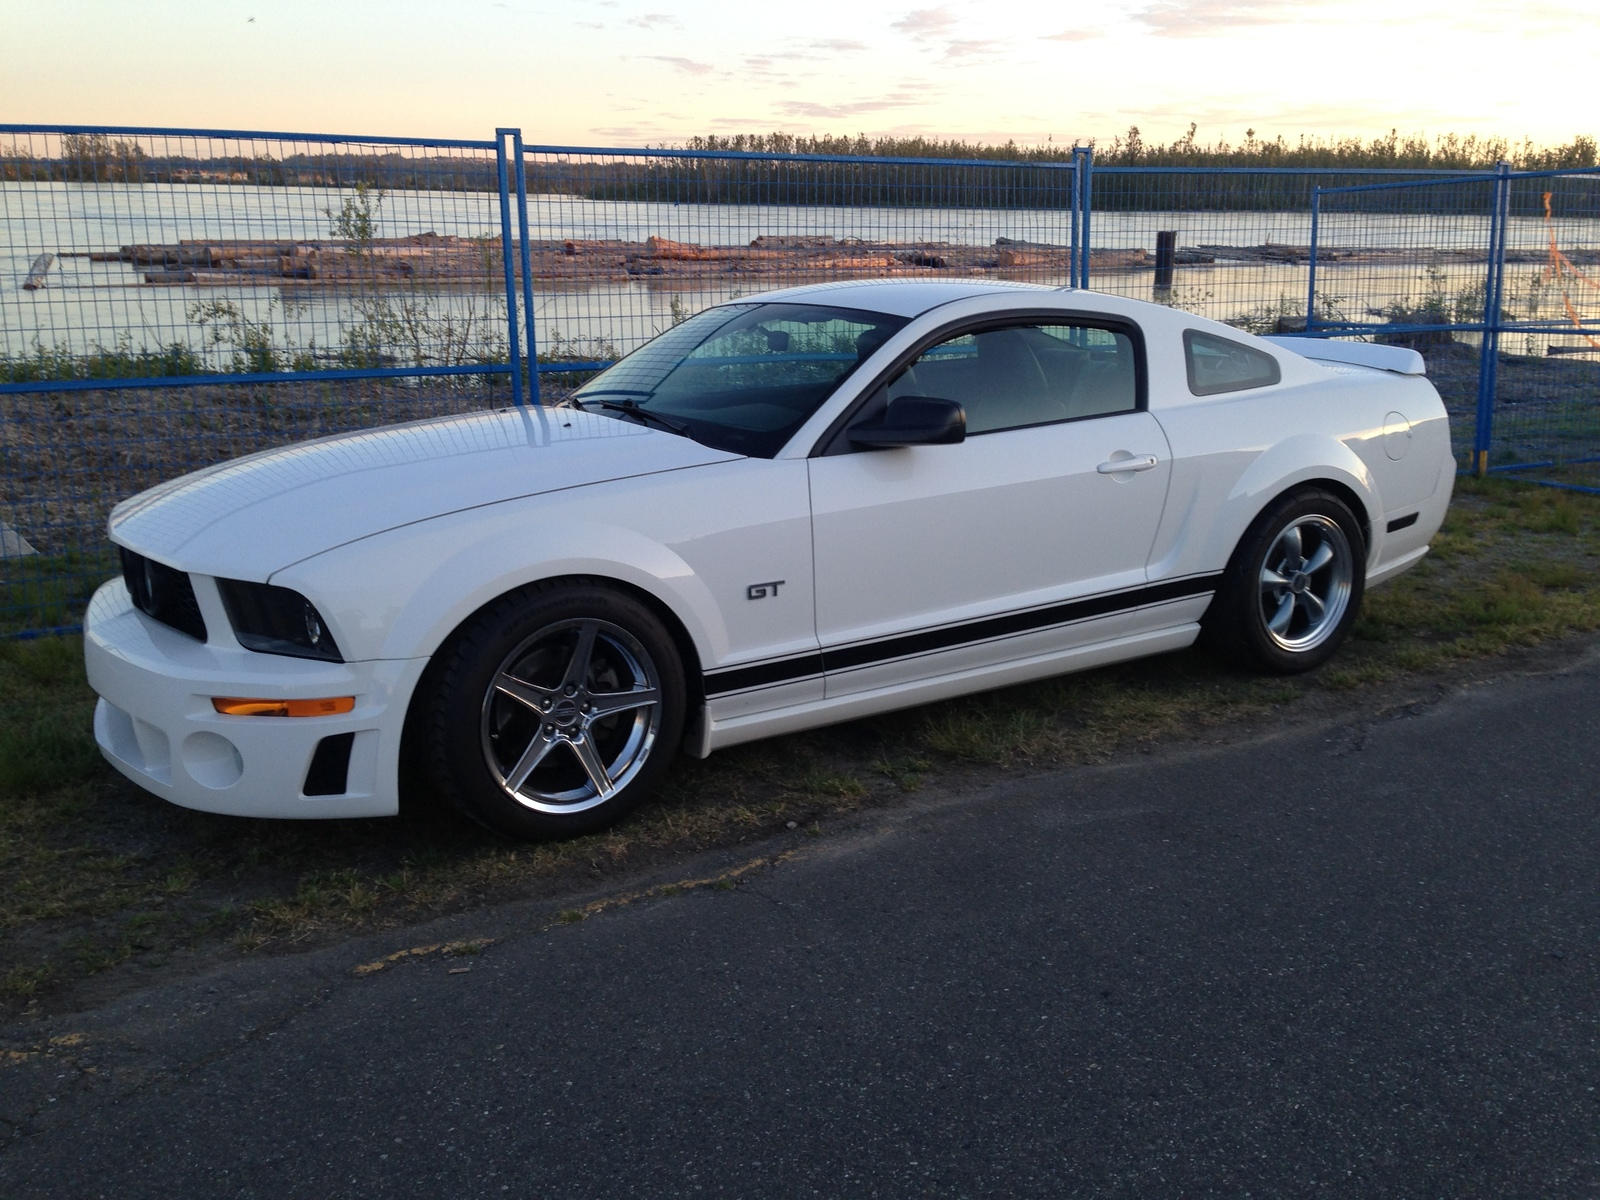 Mustang Gt 0 60 >> 2006 Ford Mustang Gt 1 4 Mile Trap Speeds 0 60 Dragtimes Com